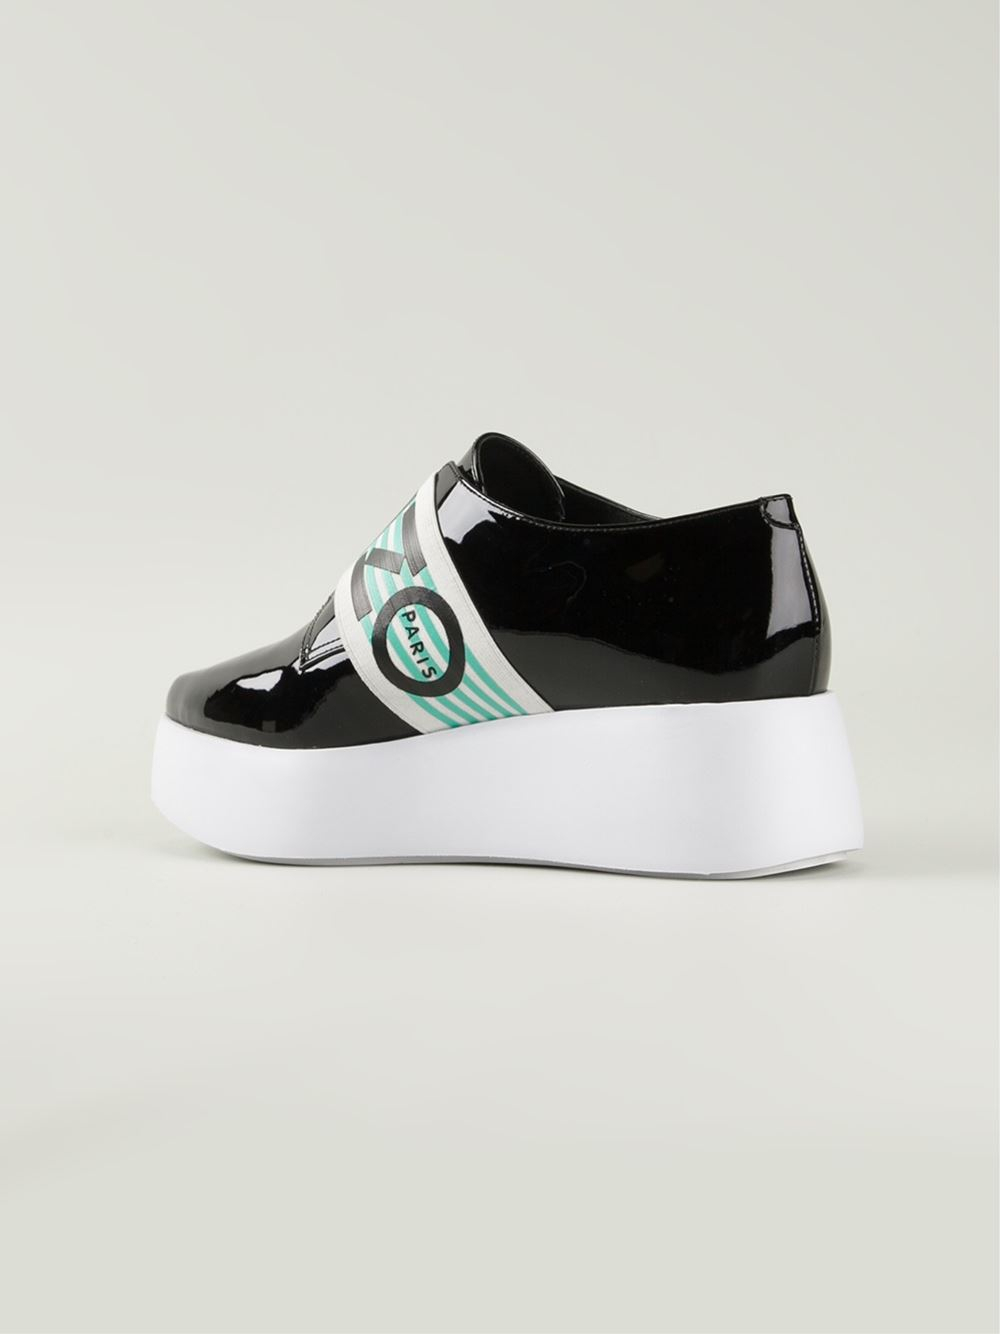 Kenzo Slip-On Platform Shoes In Black | Lyst